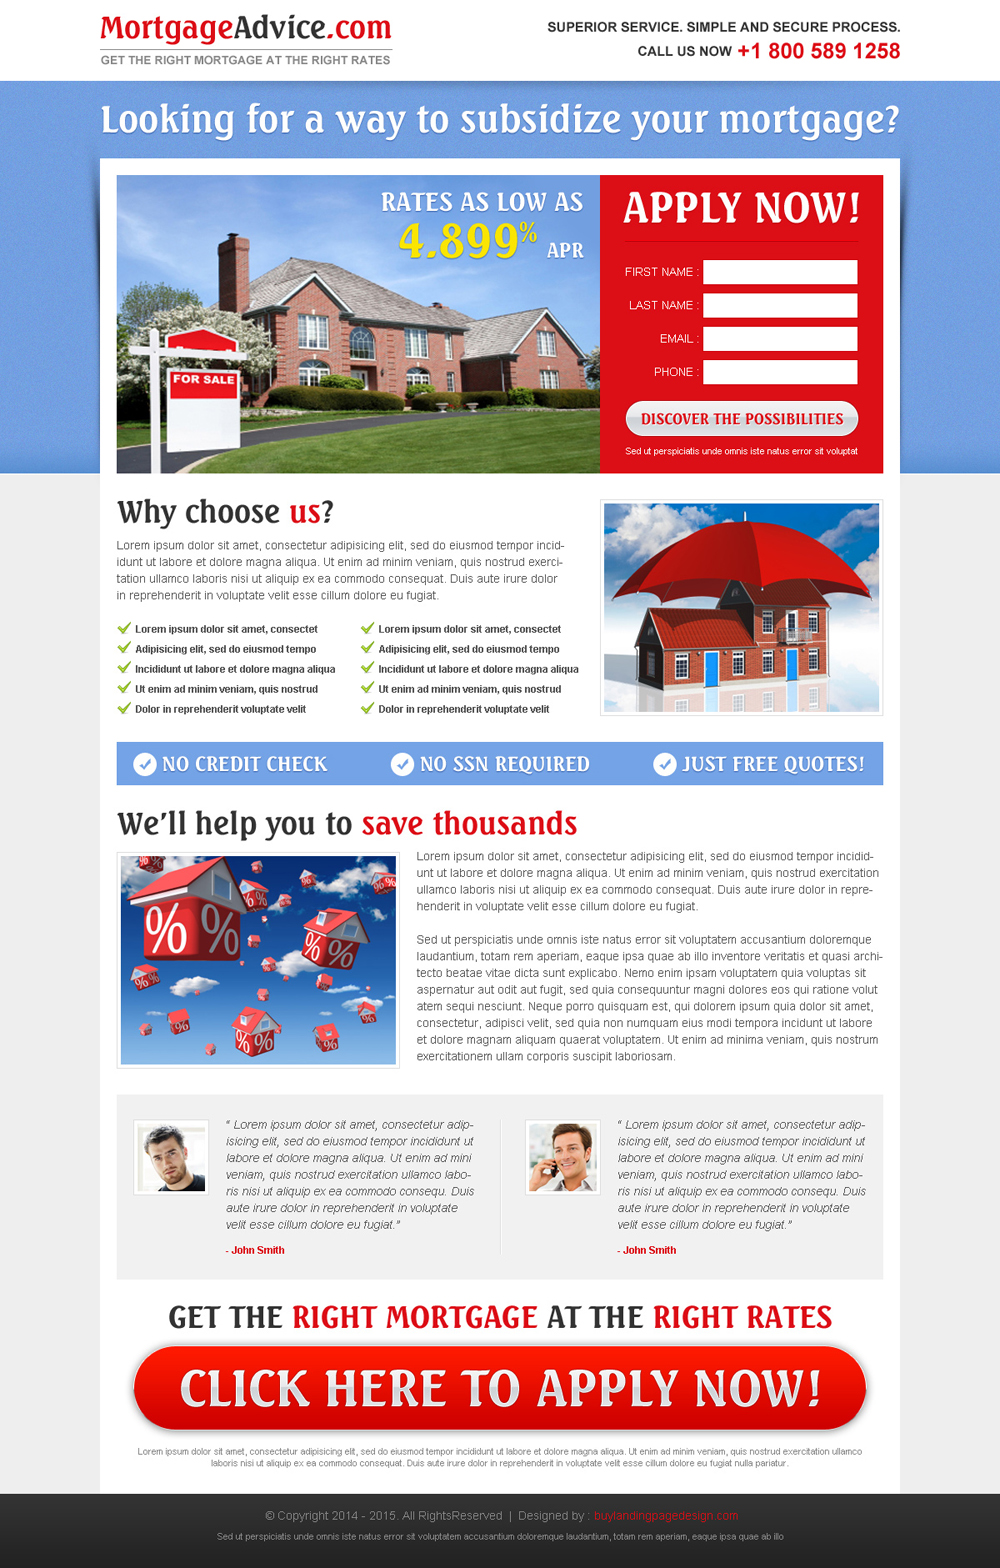 mortgage-advice-online-lead-capture-landing-page-design-templates-for-mortgage-business-success-005